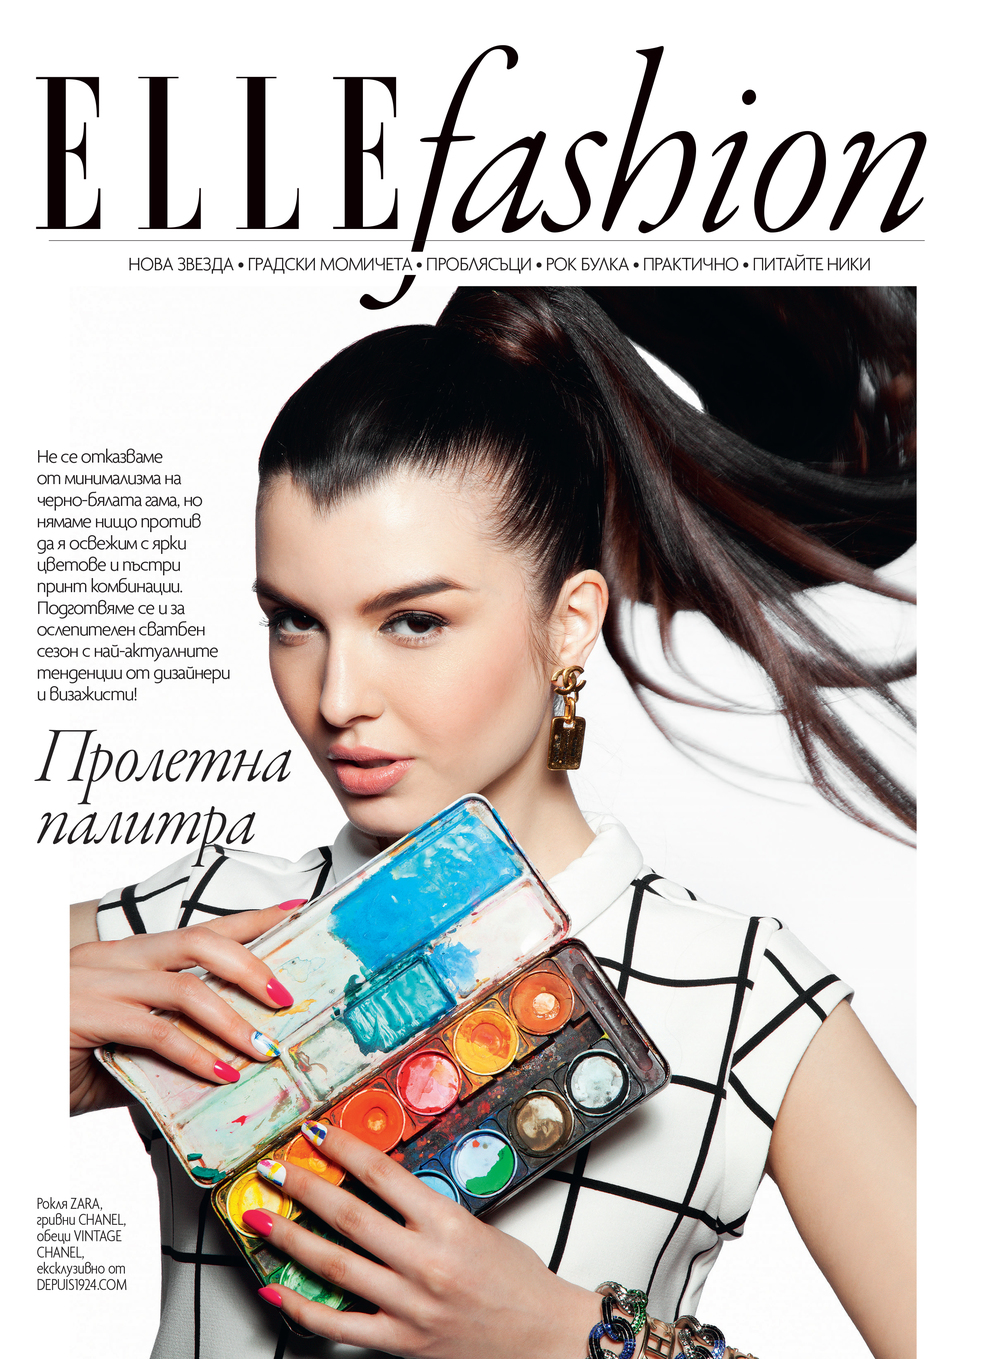 ELLE April 2015 COVER STORY 1.jpg